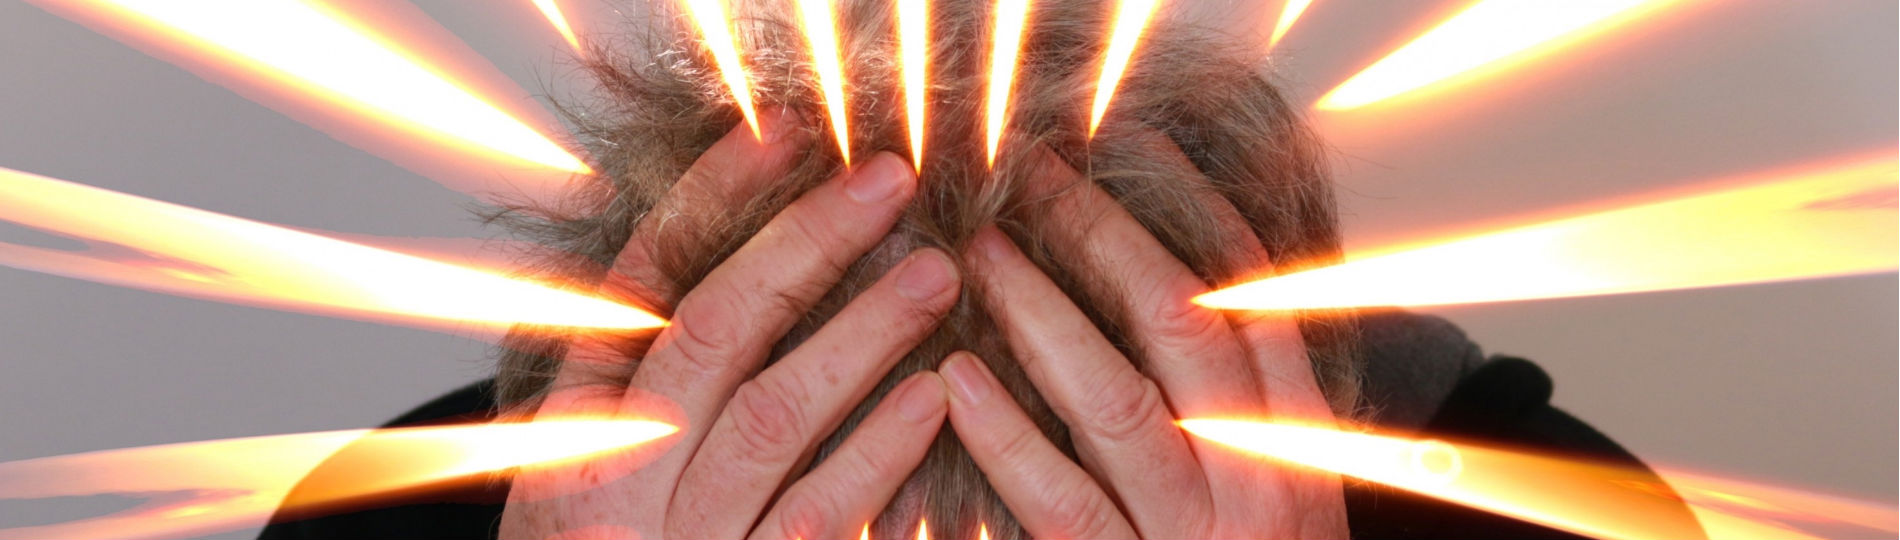 A person presses their hands to their head in frustration, outlined in streaks of orange light.